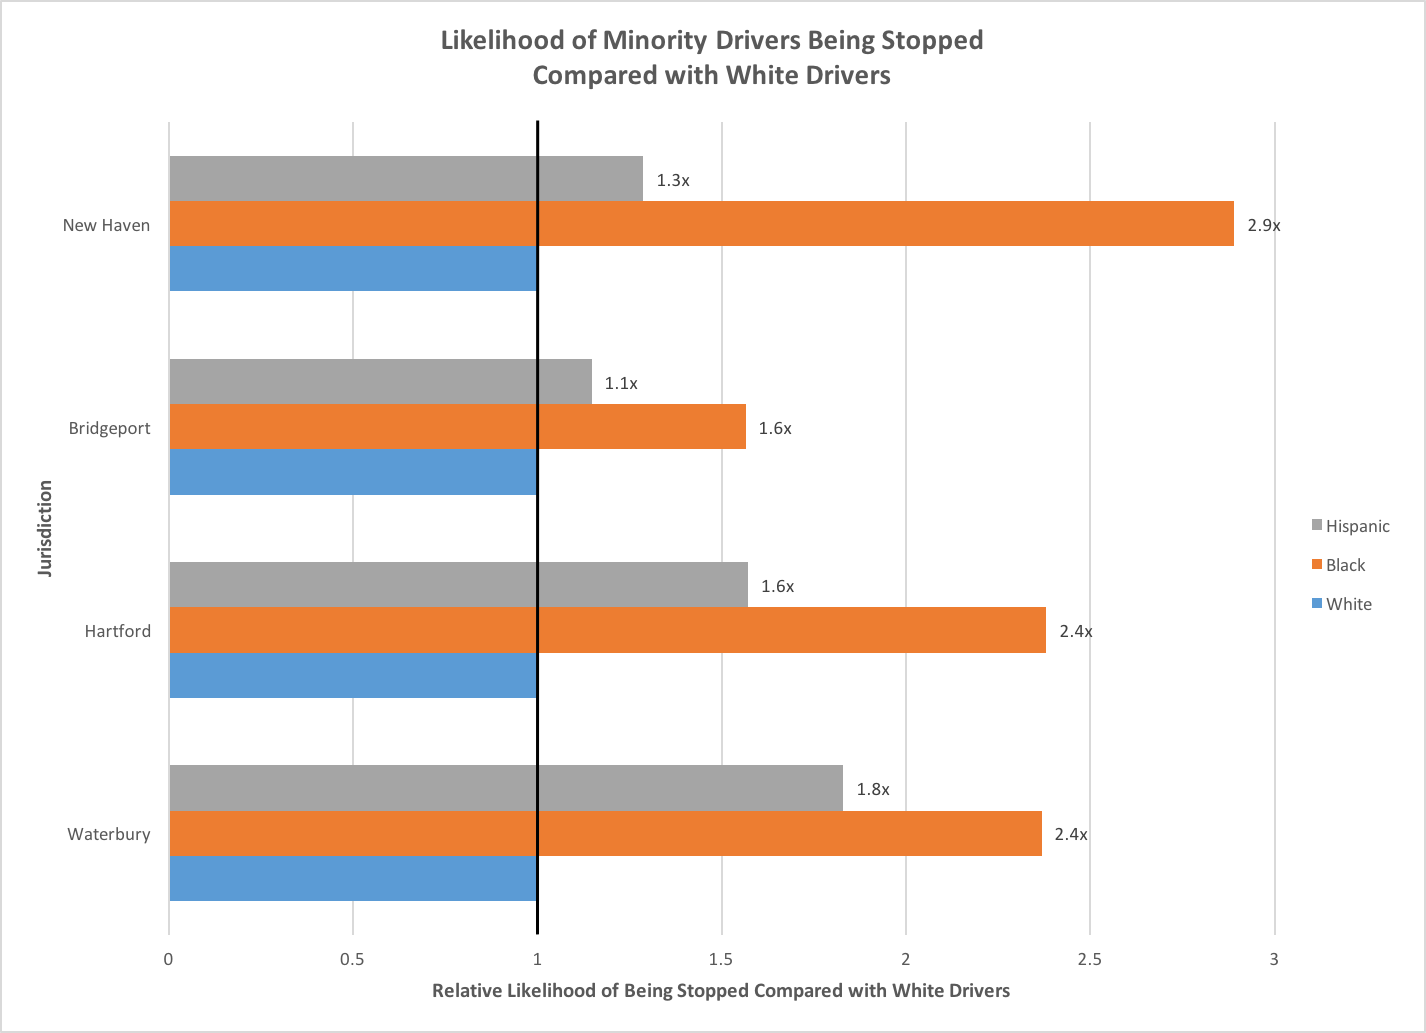 Likelihood of Minority Drivers Being Stopped, Compared to White Drivers